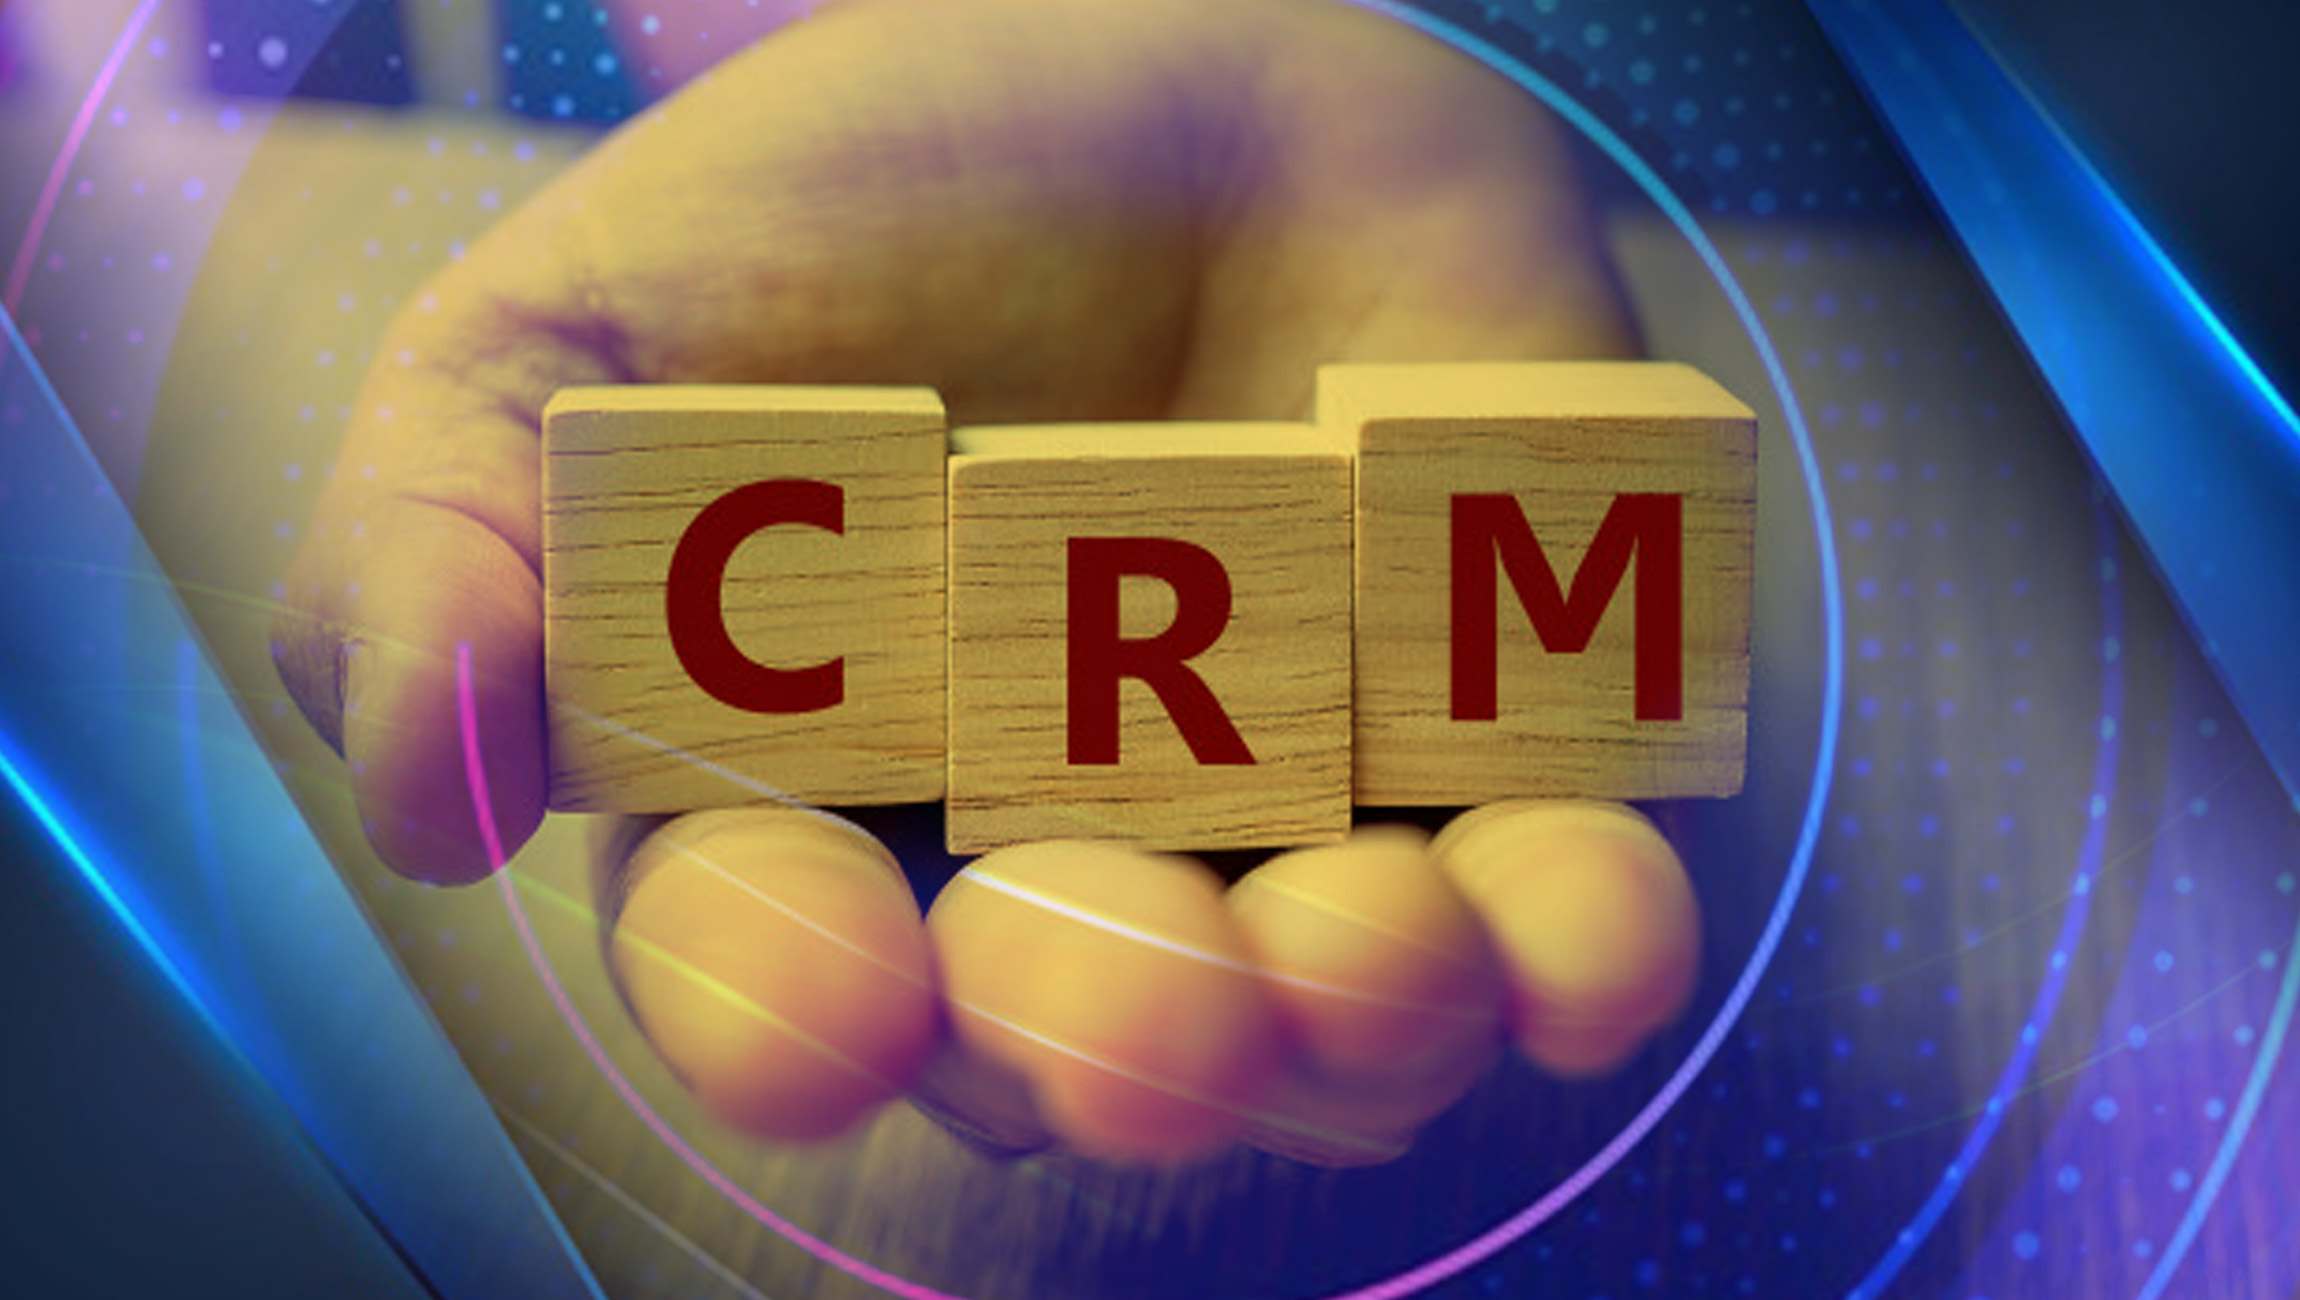 Turn Small Business Saturday Traffic into Future Sales: Five Ways the Right CRM Can Help